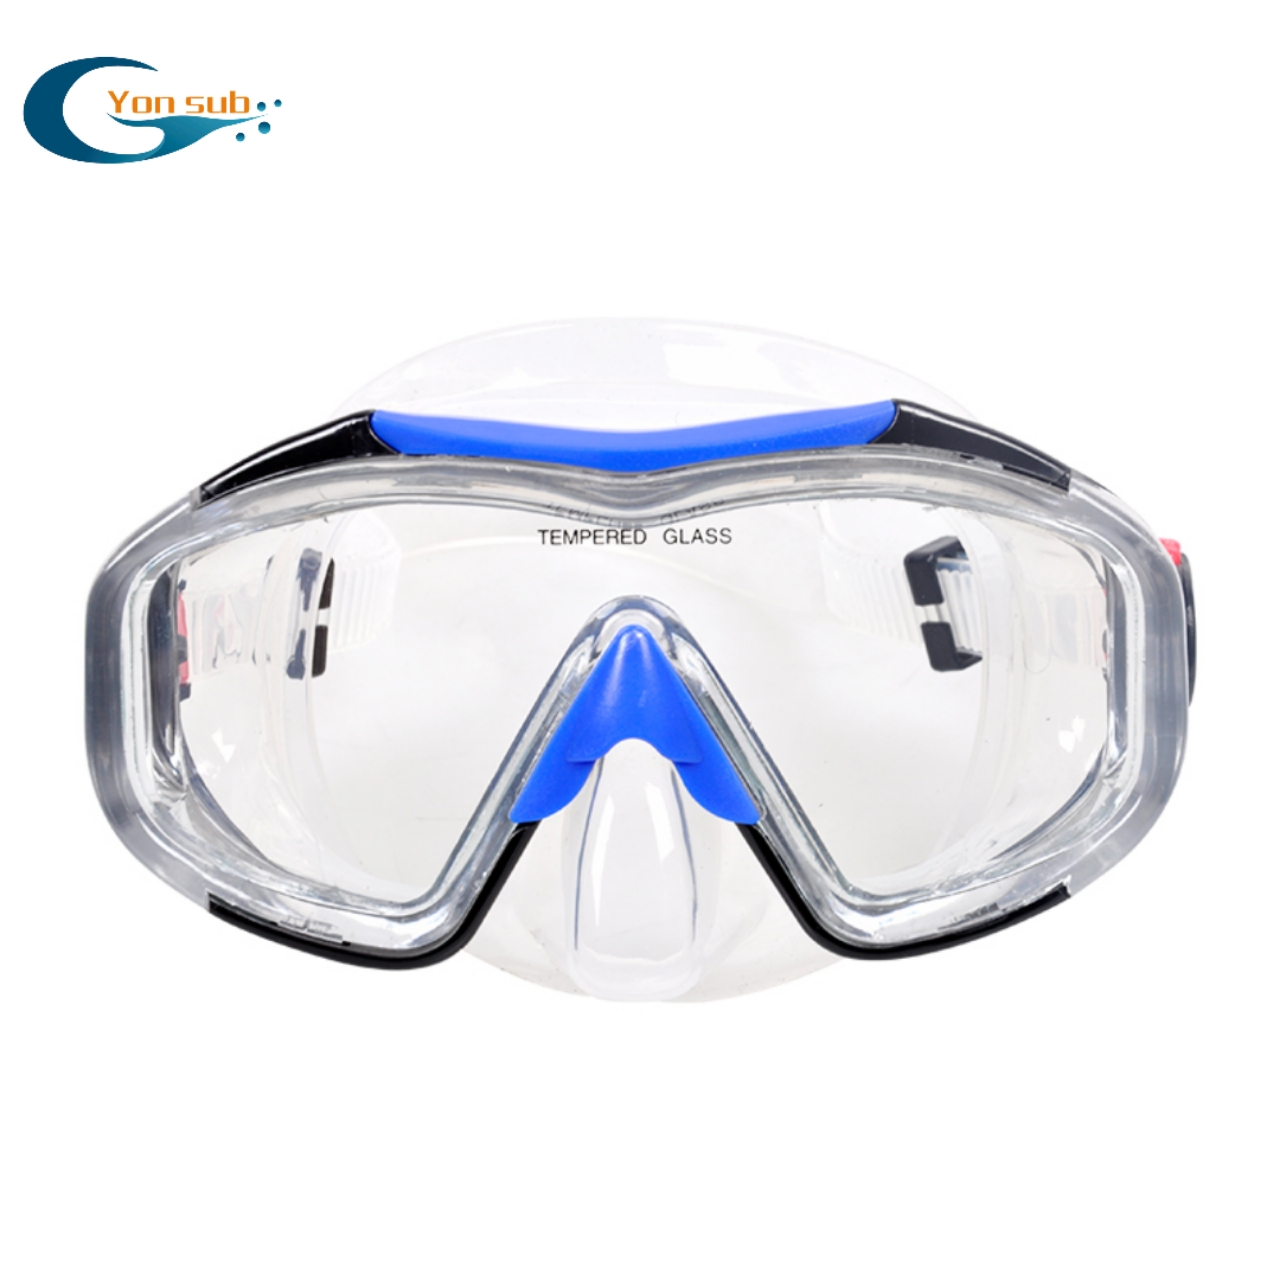 High quality 4 mm tempered glass silicone scuba diving mask for sale